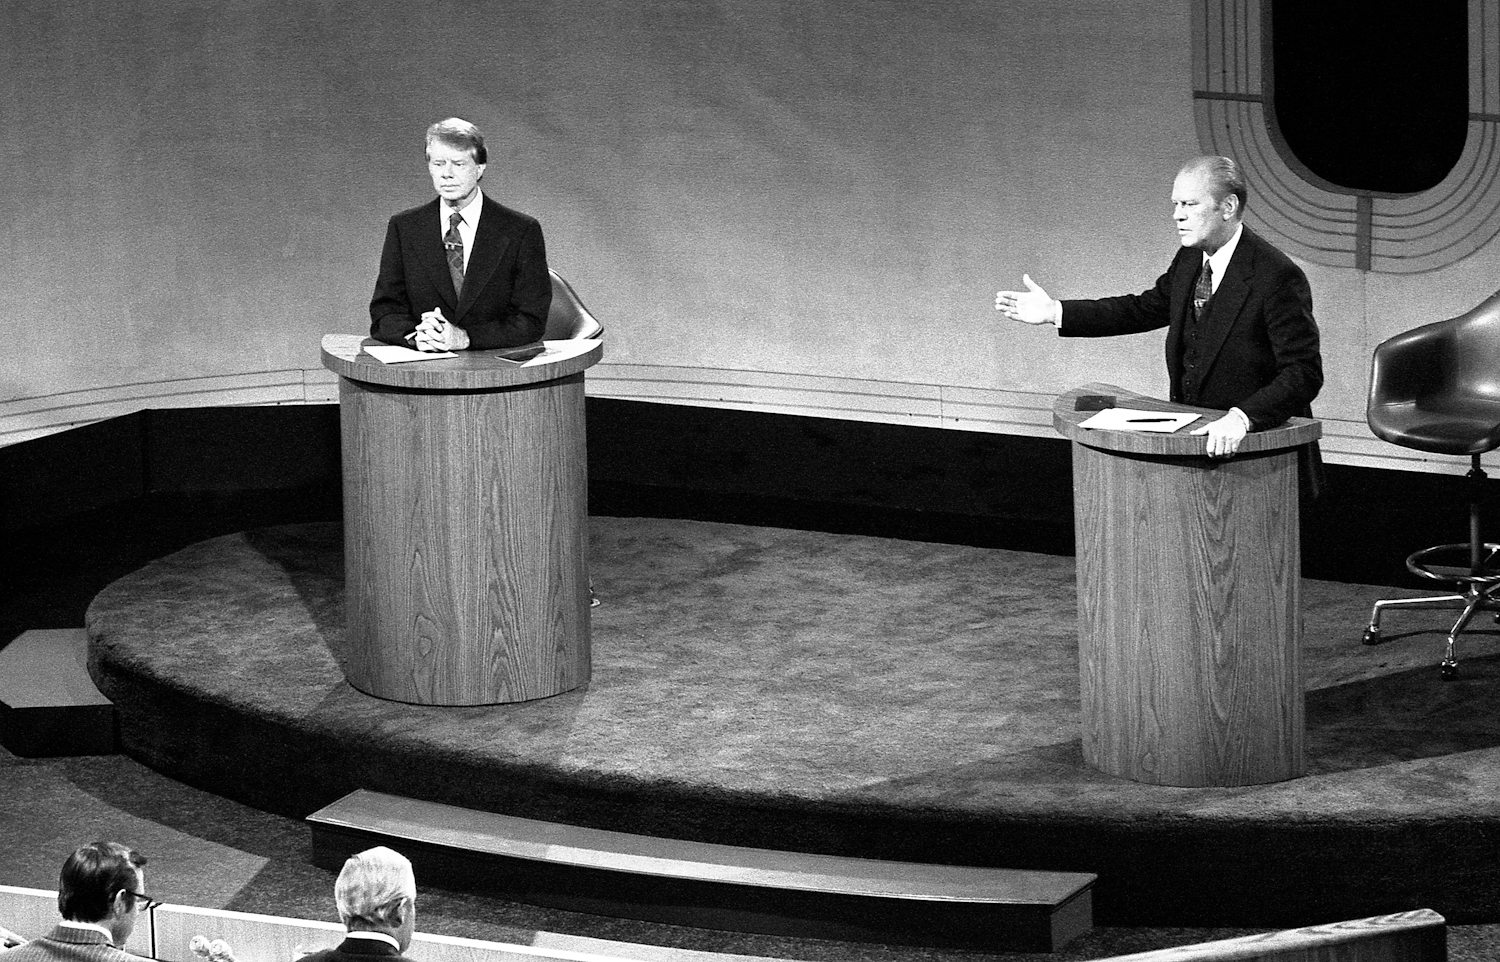 President Ford and Jimmy Carter meet at the Walnut Street Theater in Philadelphia                               to debate domestic policy during the first of the three Ford-Carter Debates, Sept. 23, 1976.